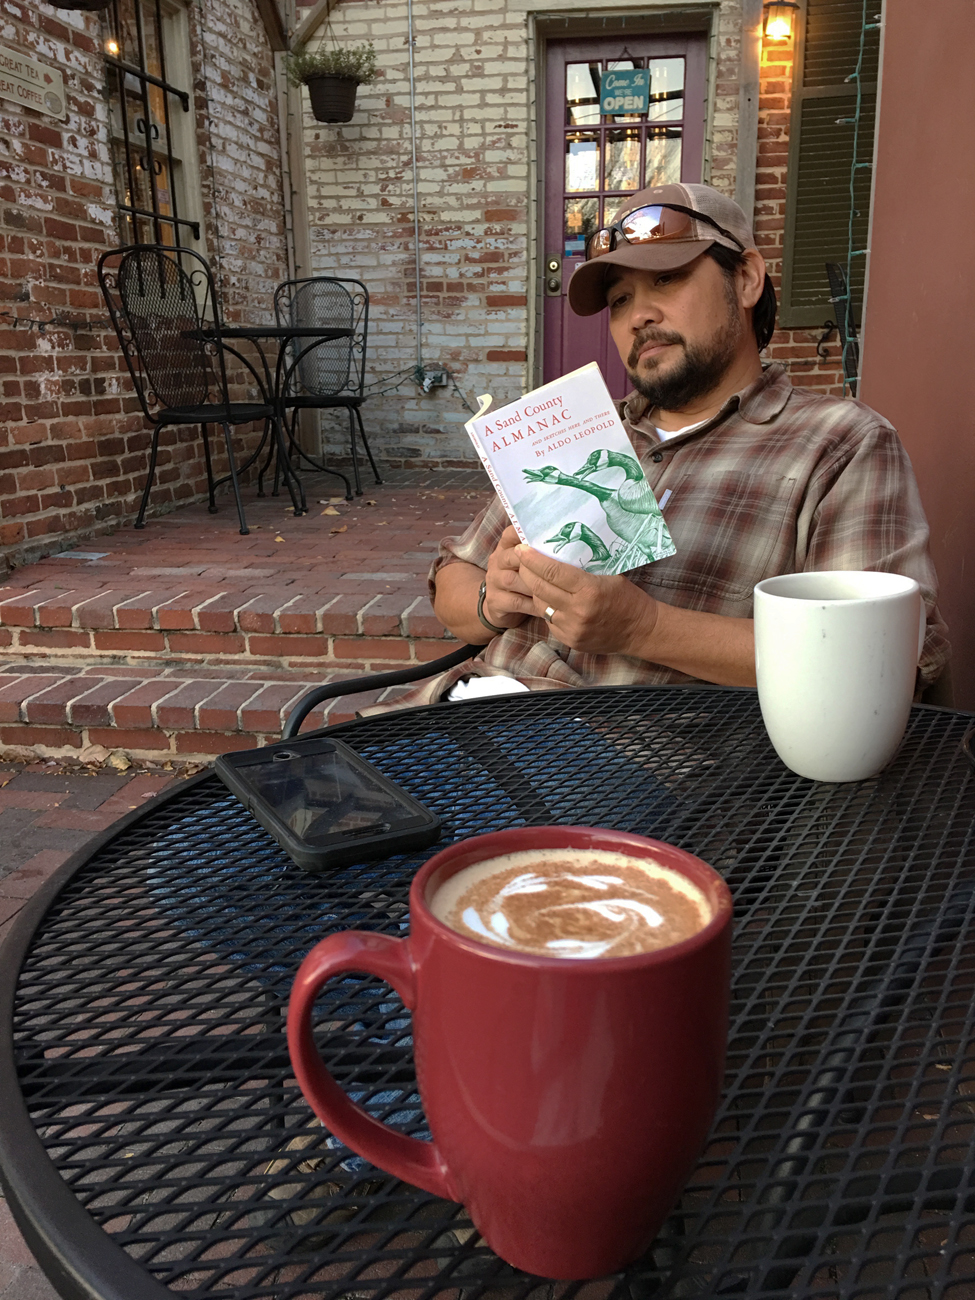 Michael reading at an outdoor table with mugs of coffee and tea on the table in Frederick